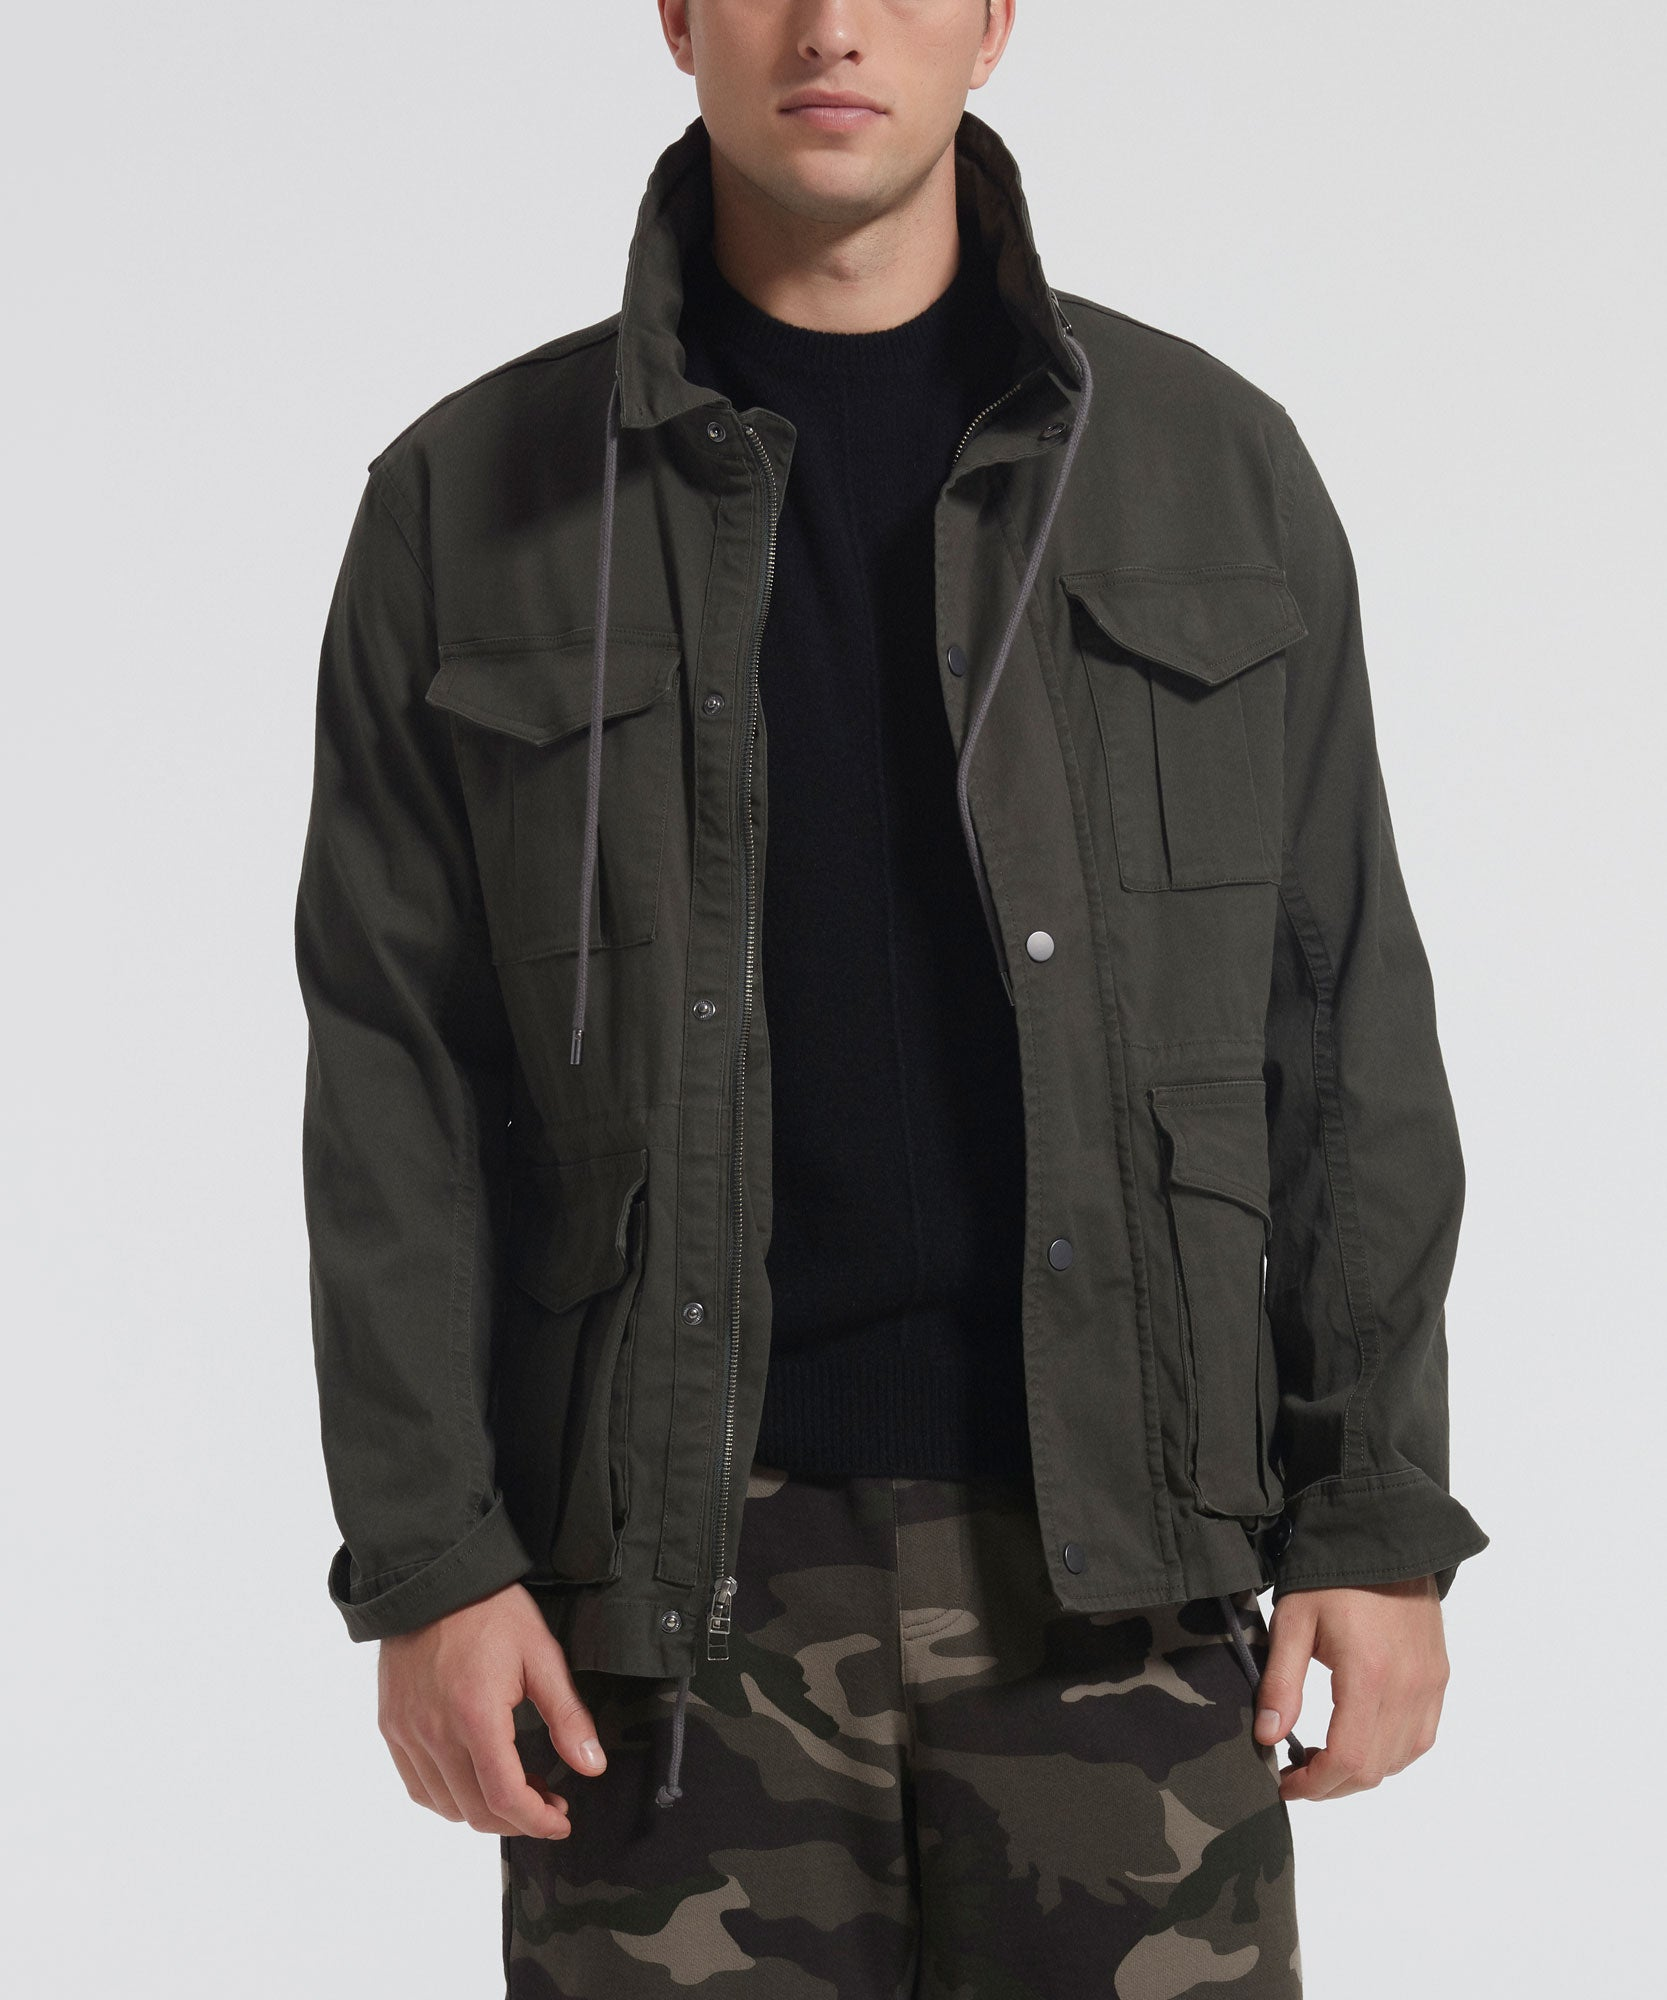 Jungle Stretch Cotton Field Jacket - Men's Luxe Jacket by ATM Anthony Thomas Melillo